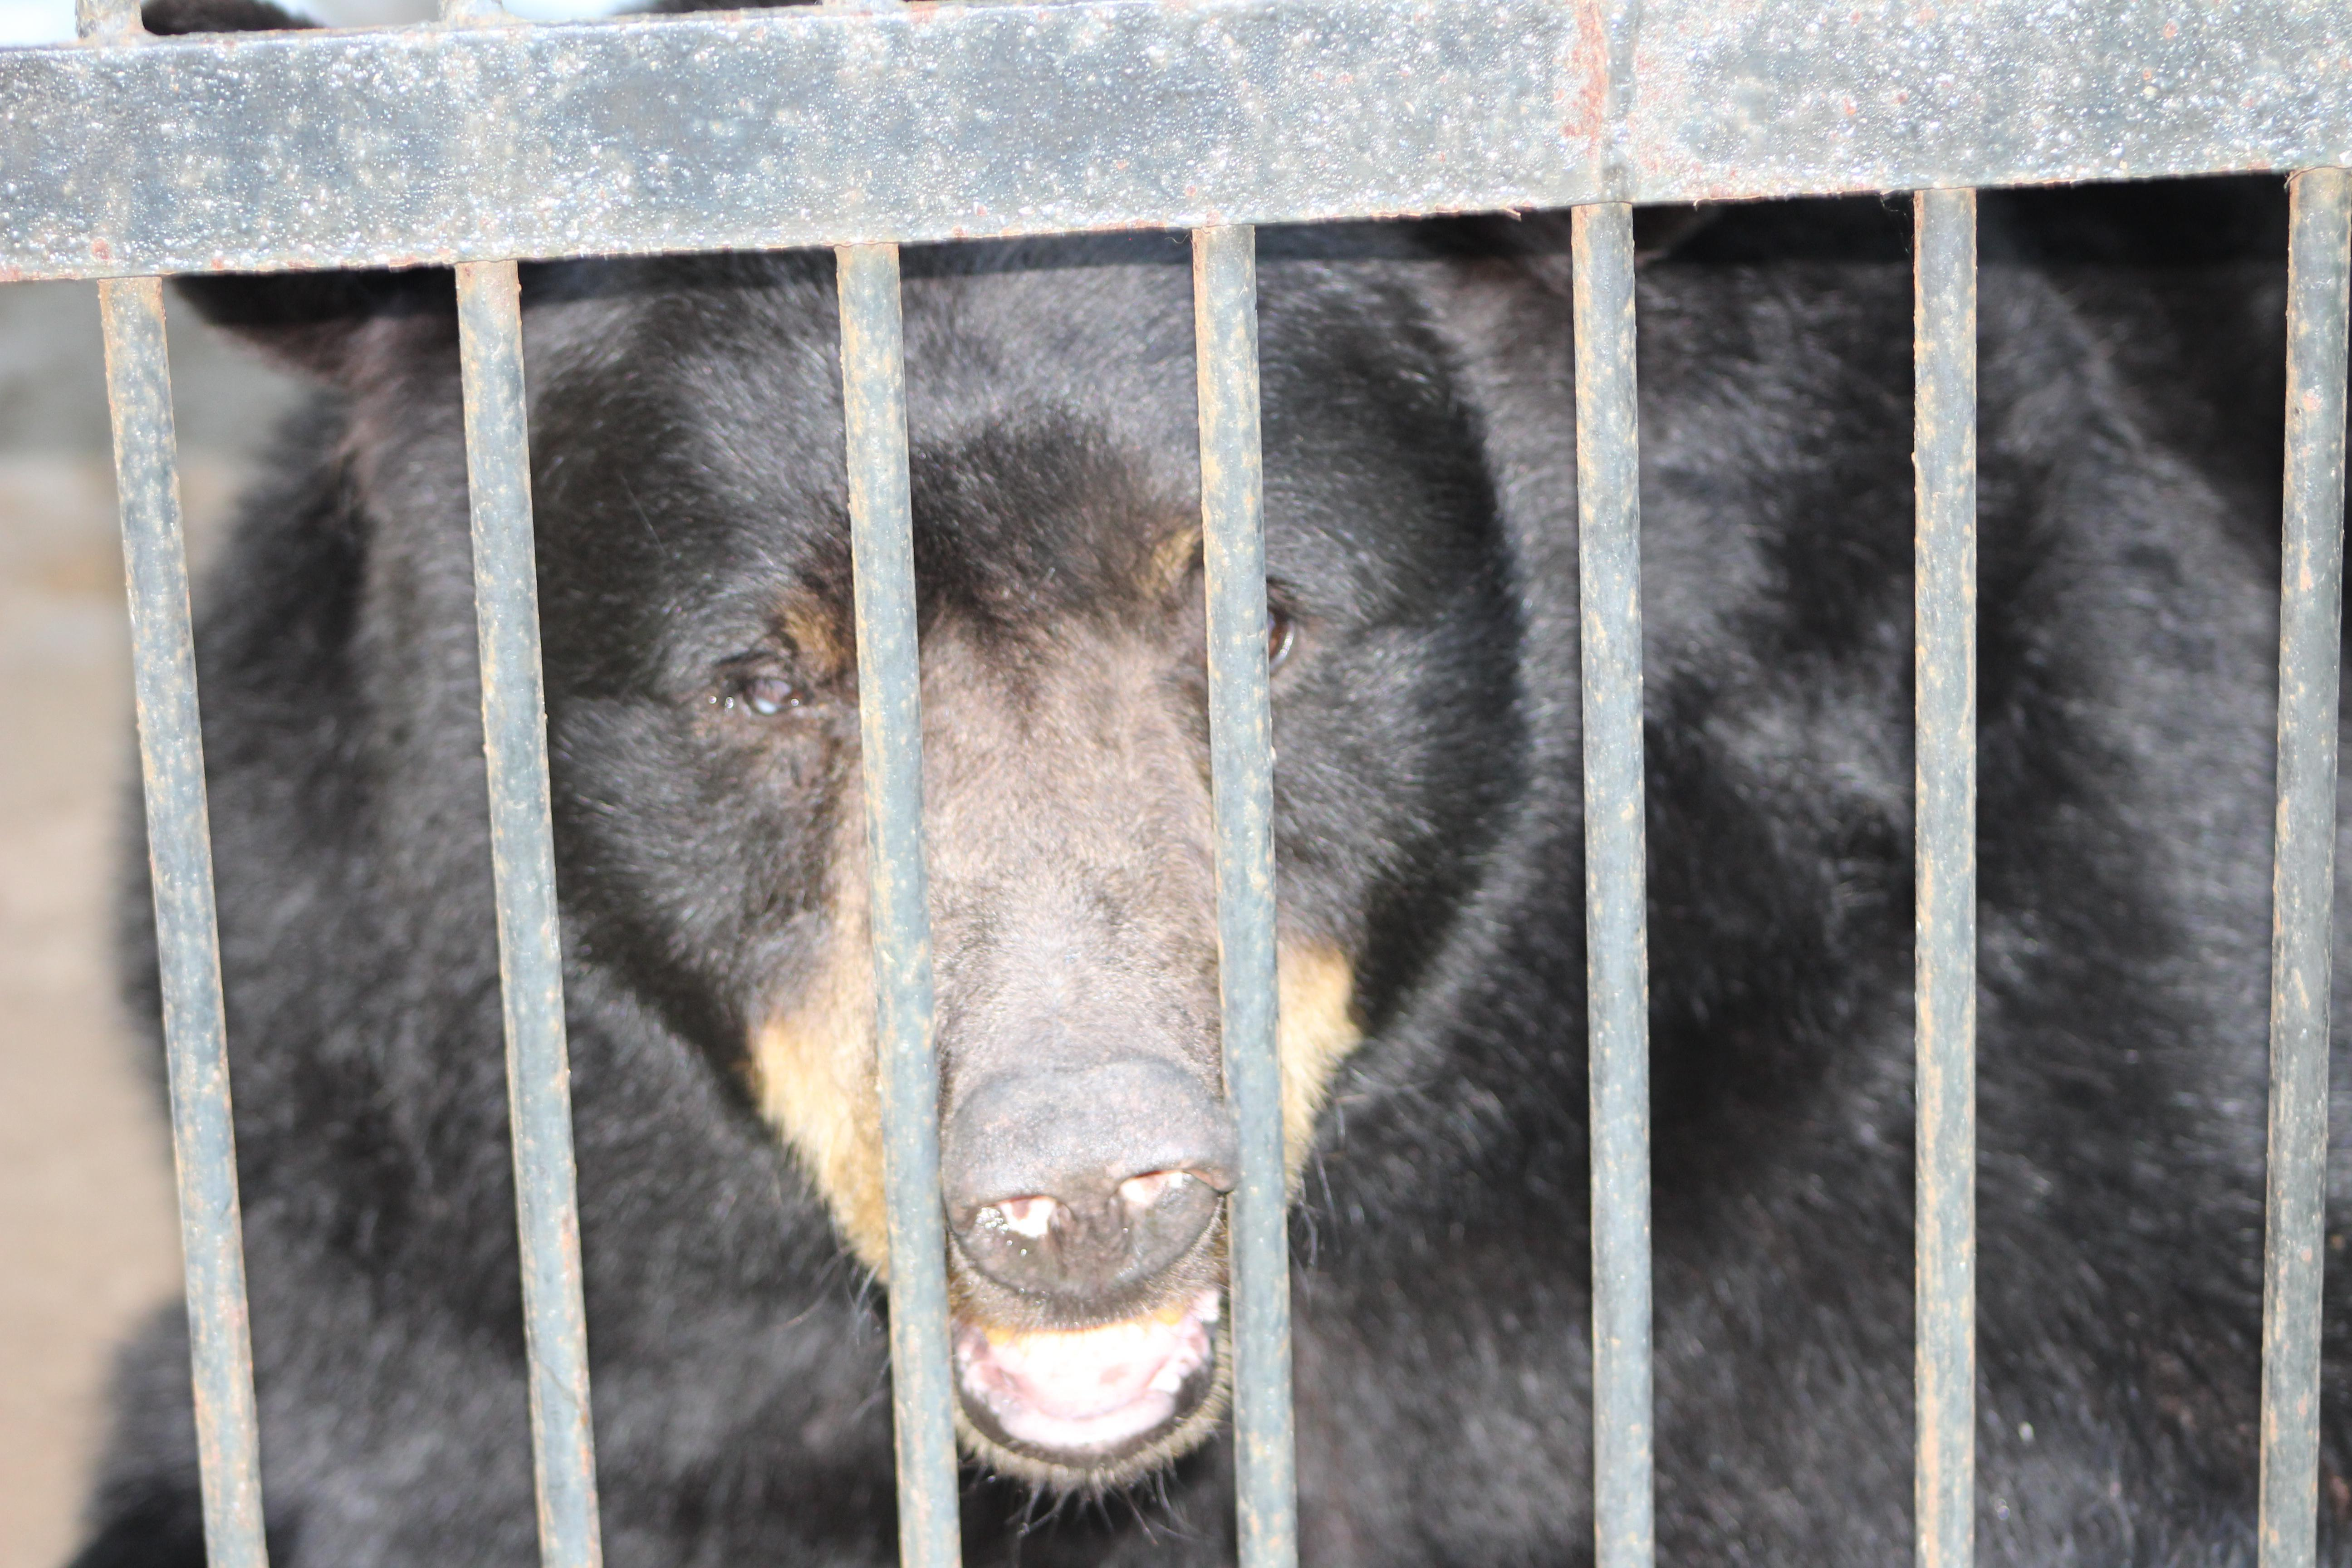 a74a78cd9557539dcd9c005494033352 Two 'long-suffering bears' rescued from 'tiny prison-like' cages and taken to new home in time for Christmas